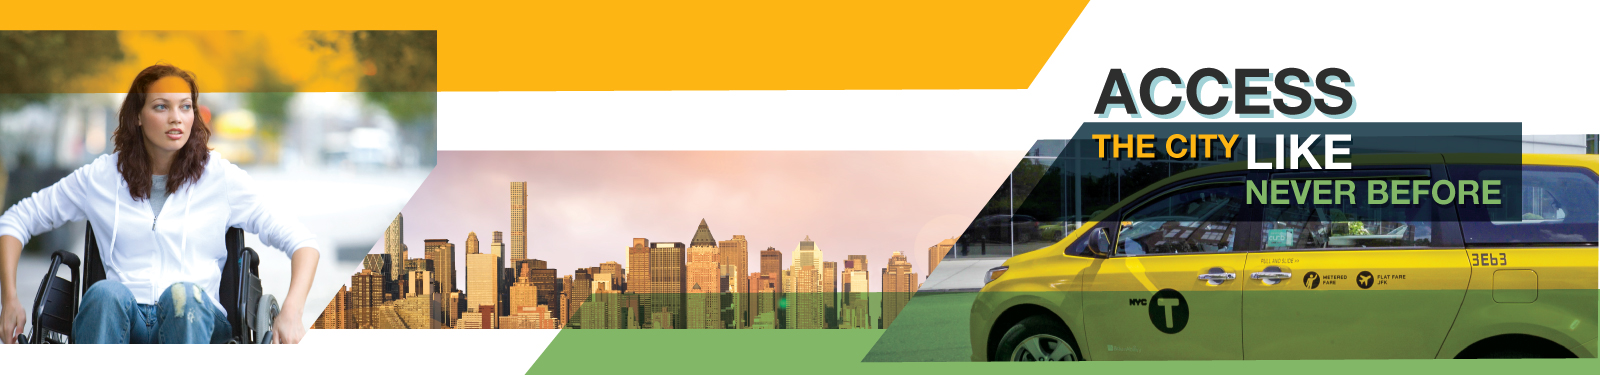 Header Image: Access the city like never before